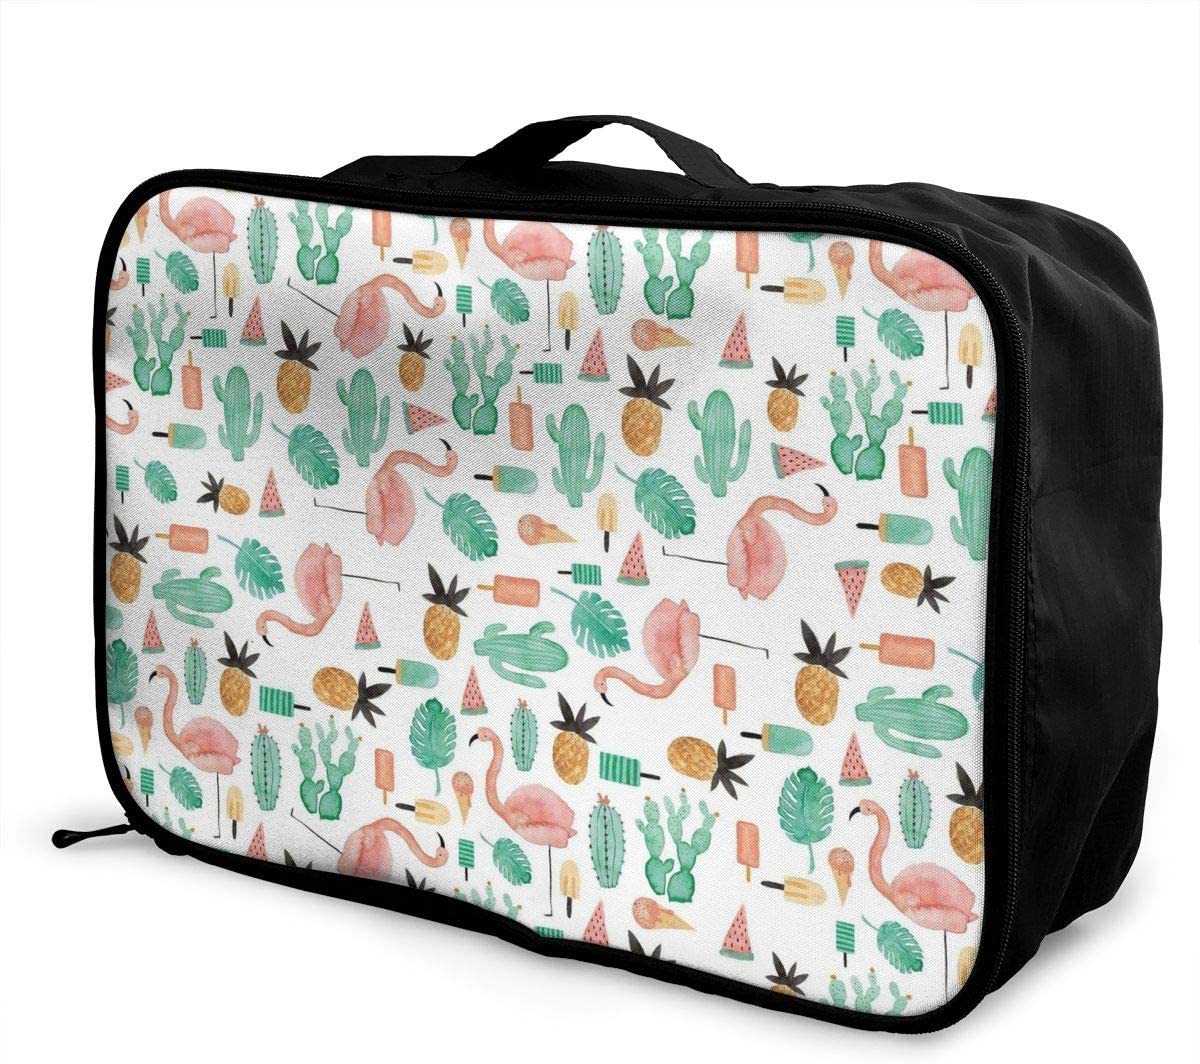 Summer Flamingo Travel Carry-on Luggage Weekender Bag Overnight Tote Flight Duffel In Trolley Handle